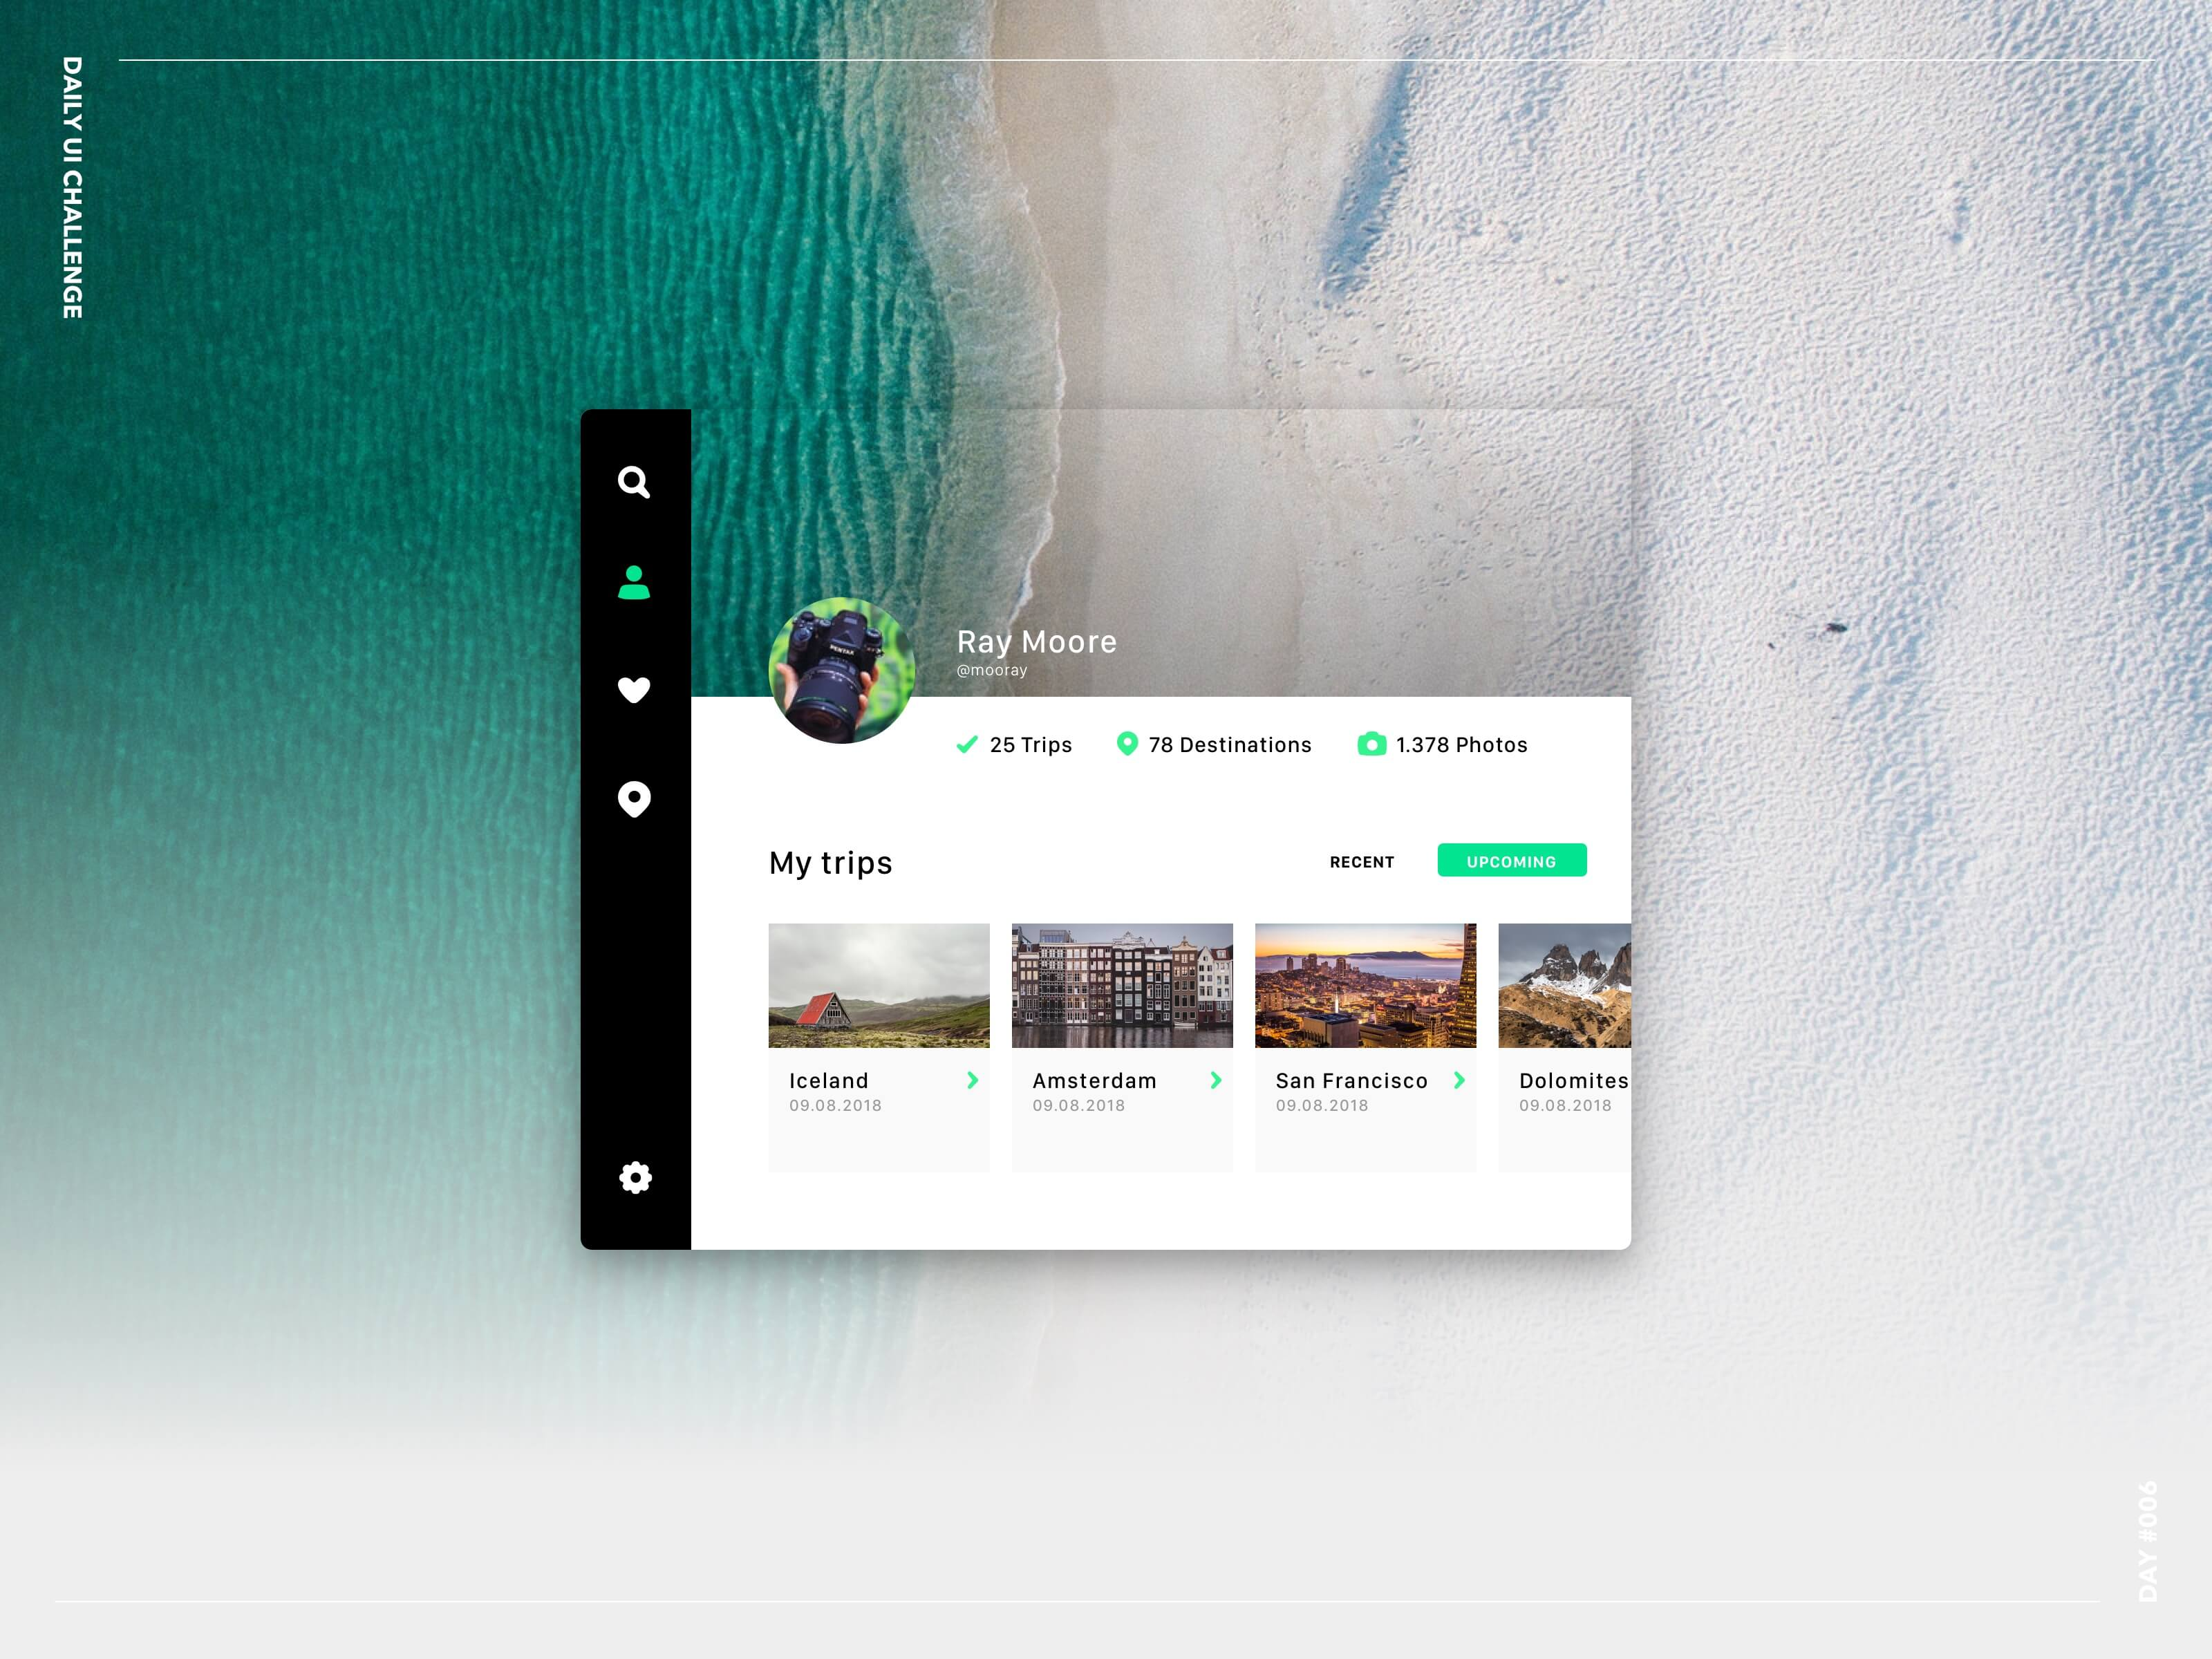 006-DUIC-User-Profile-Dribbble